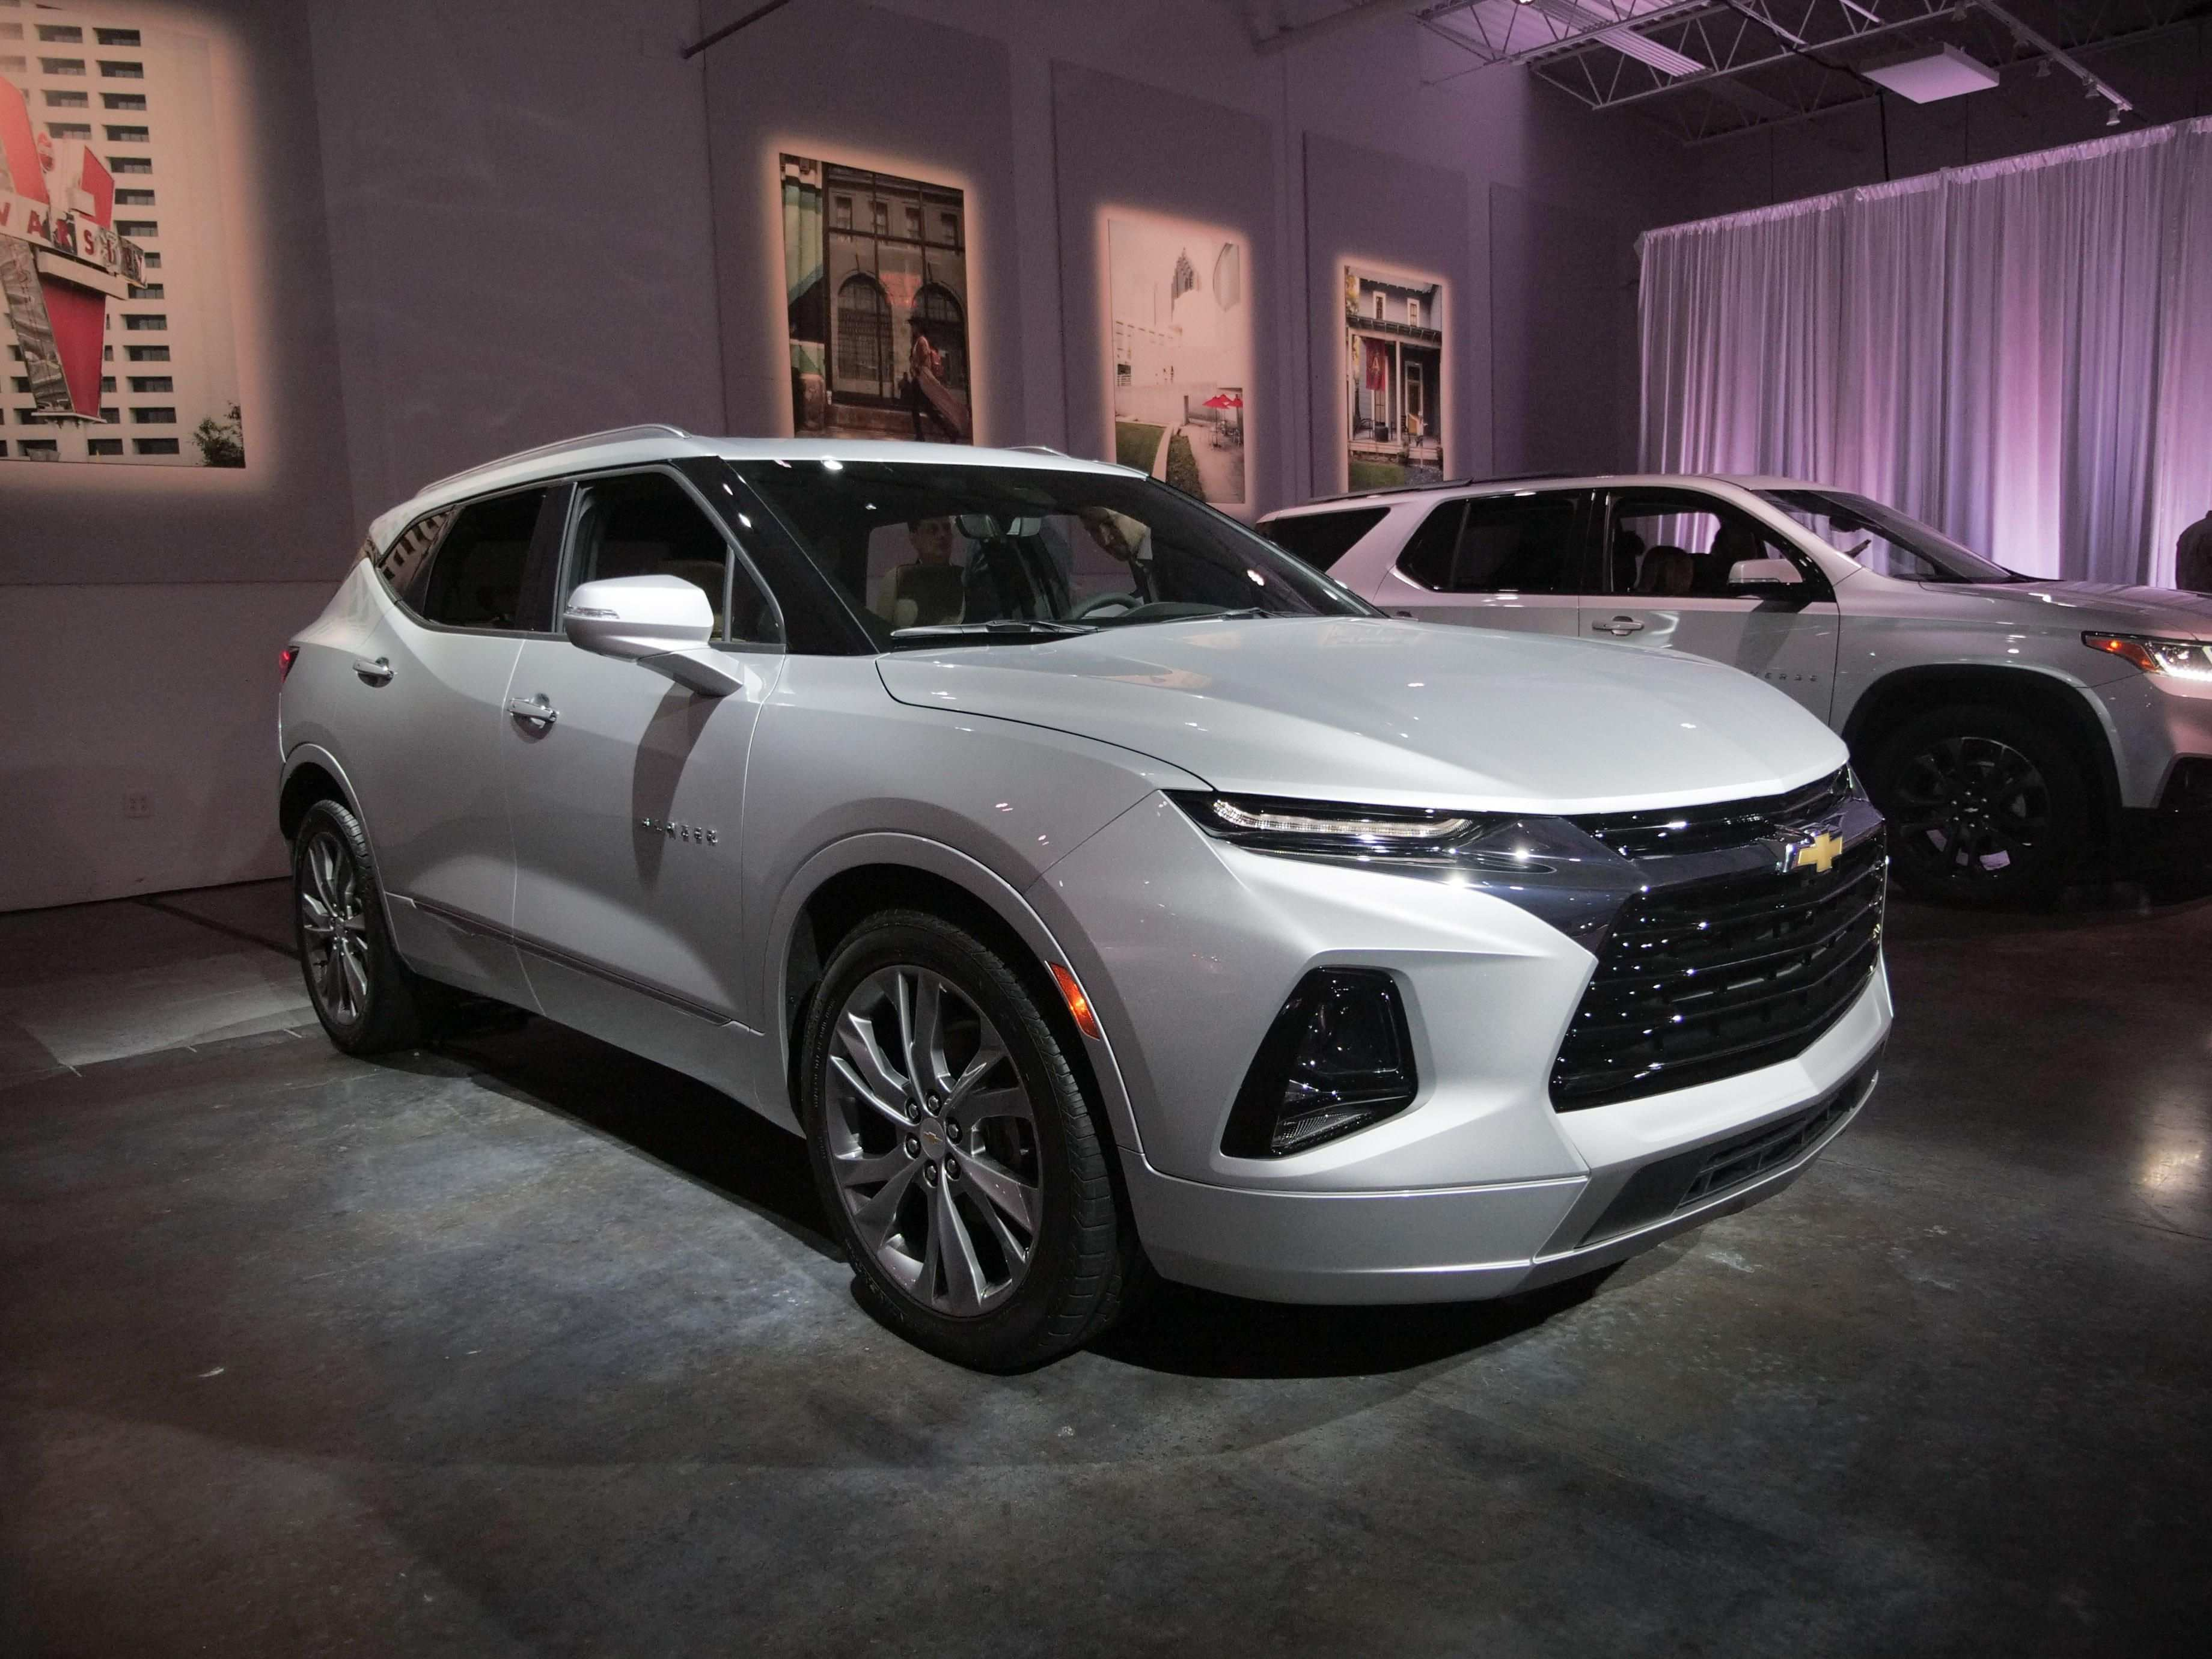 20 Concept of New Chevrolet New Models 2019 Release Date Price And Review Configurations by New Chevrolet New Models 2019 Release Date Price And Review